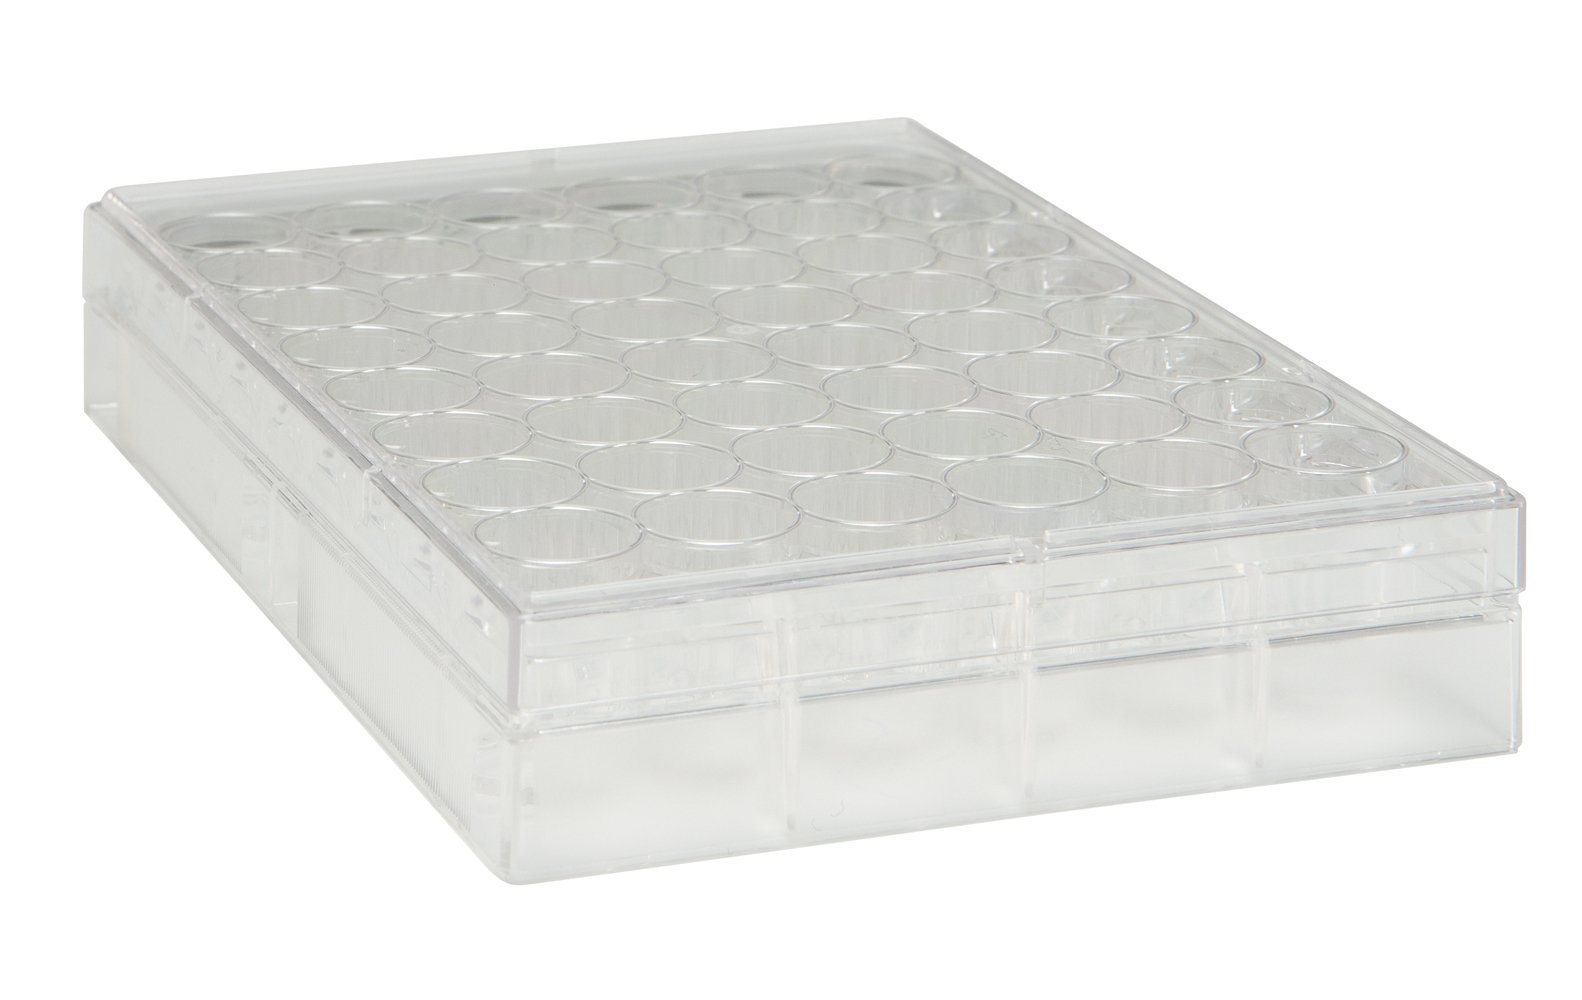 TrueLine Clear Polystyrene Sterile 96 Well Cell Culture Plate (Case of 50)